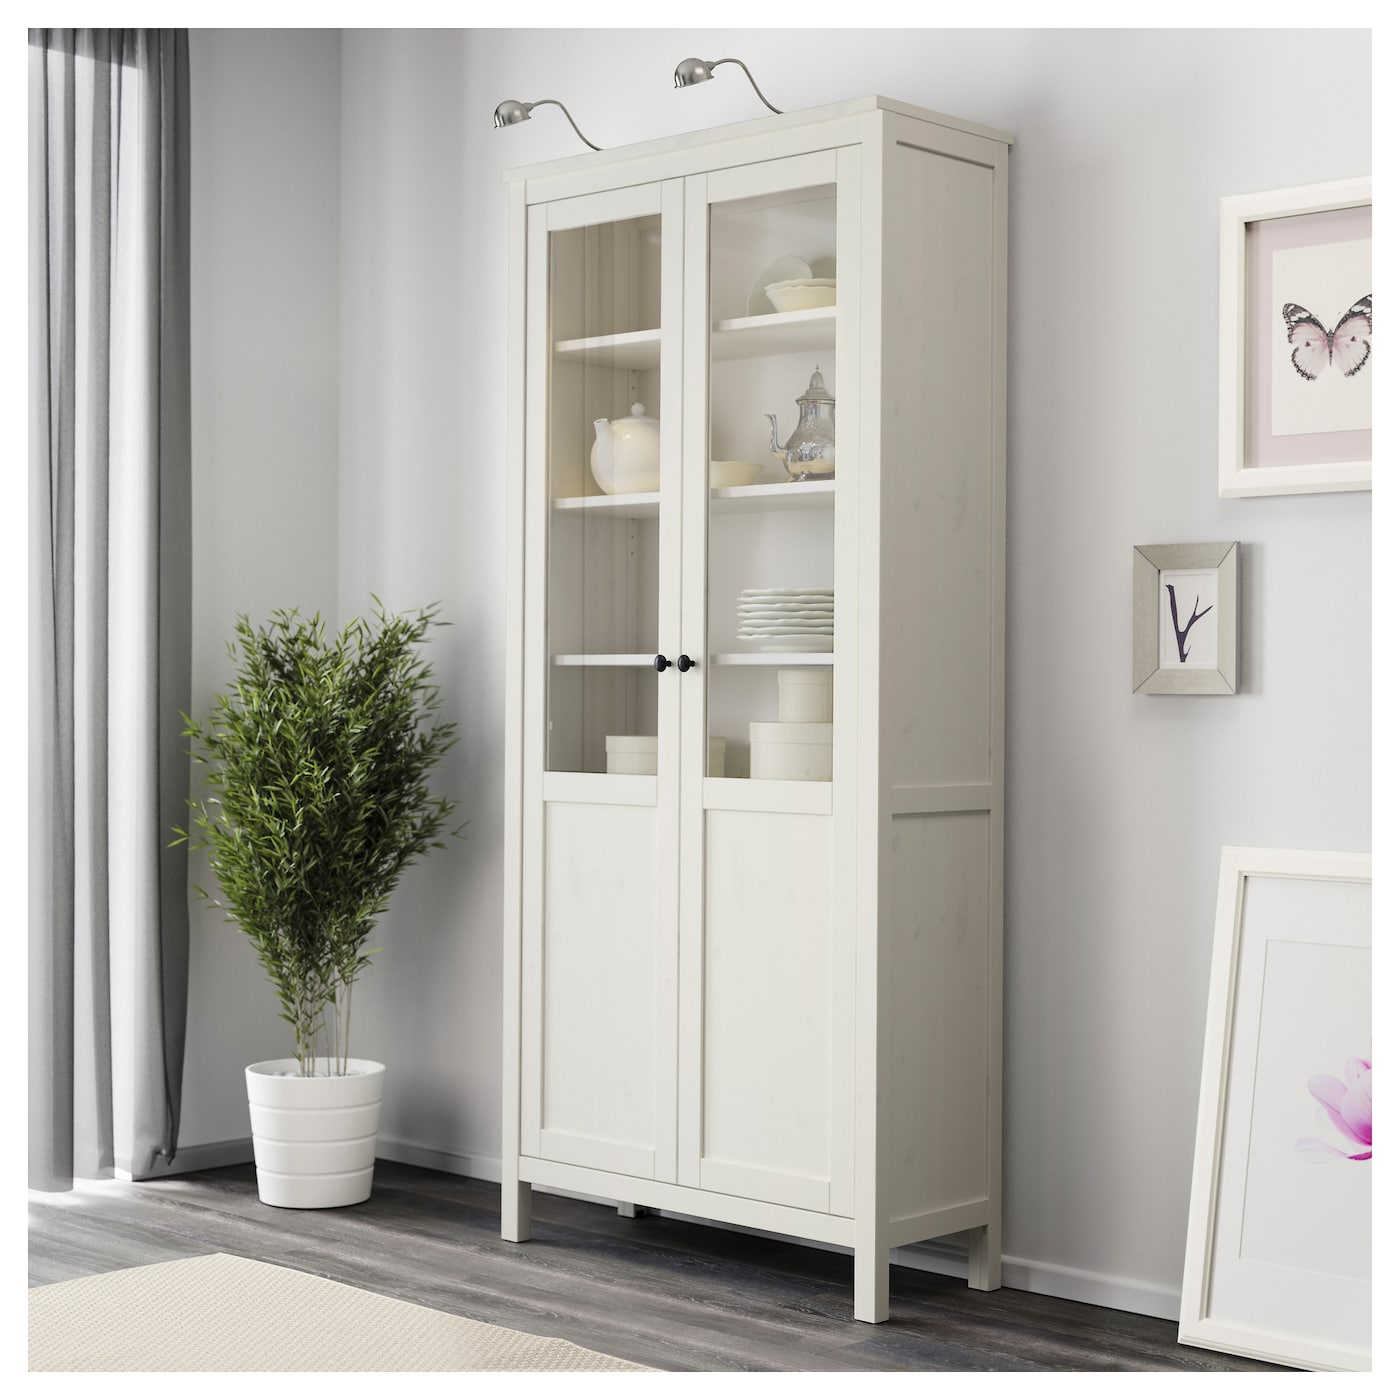 hemnes l ment avec porte panneau verre teint blanc 90x197 cm ikea. Black Bedroom Furniture Sets. Home Design Ideas